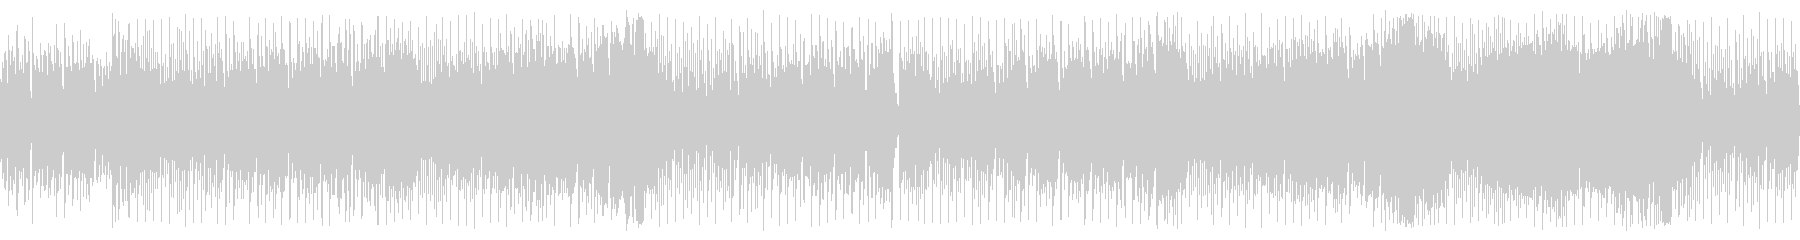 Stylish house-style chip tune's unreproduced waveform